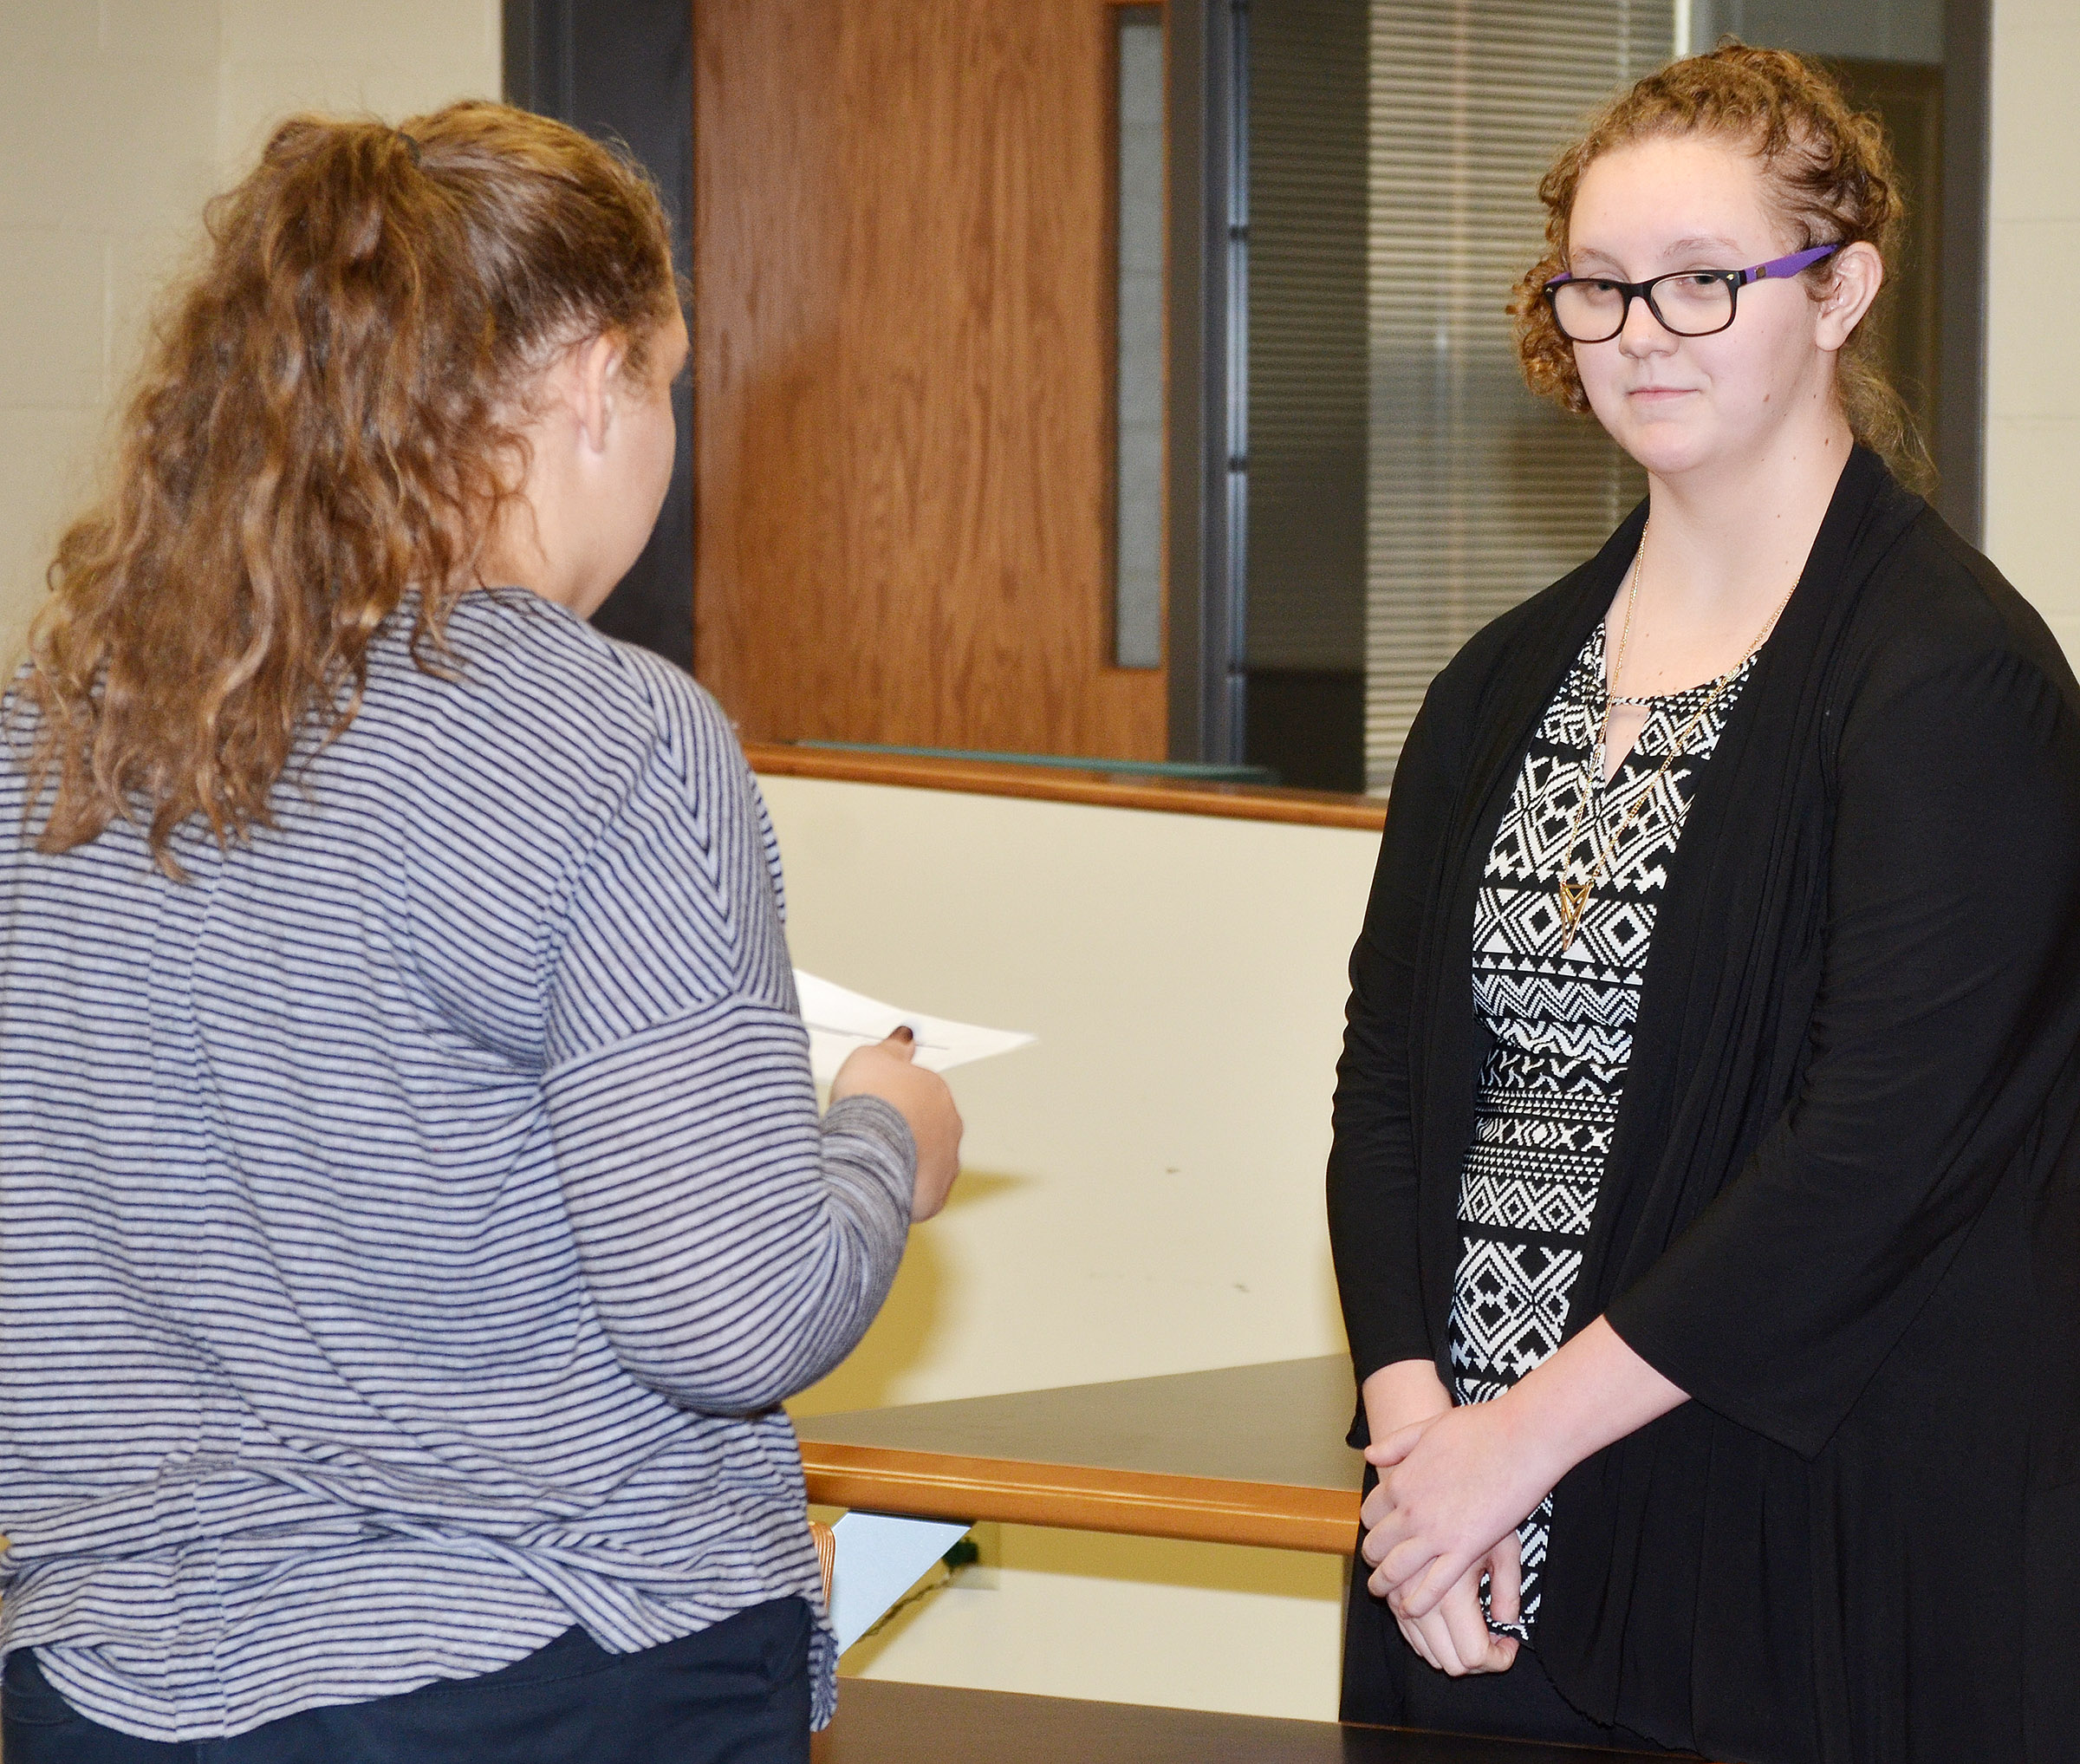 CHS sophomore Abie Angel, portraying a bailiff, swears in classmate Emily Rodgers as she testifies.